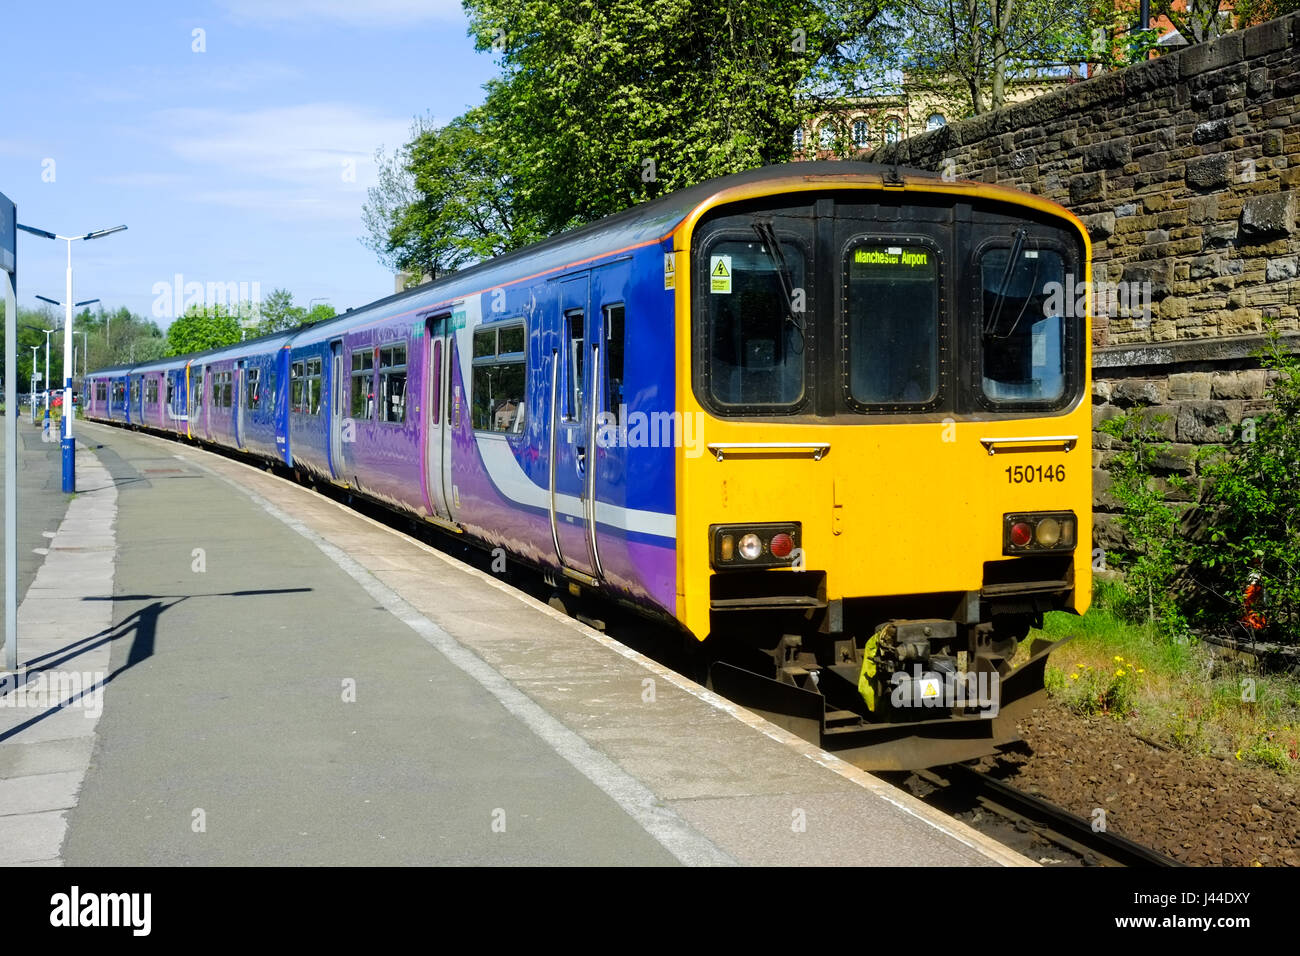 A Northern Rail 'Sprinter' dmu in Wigan Wallgate Station - Stock Image